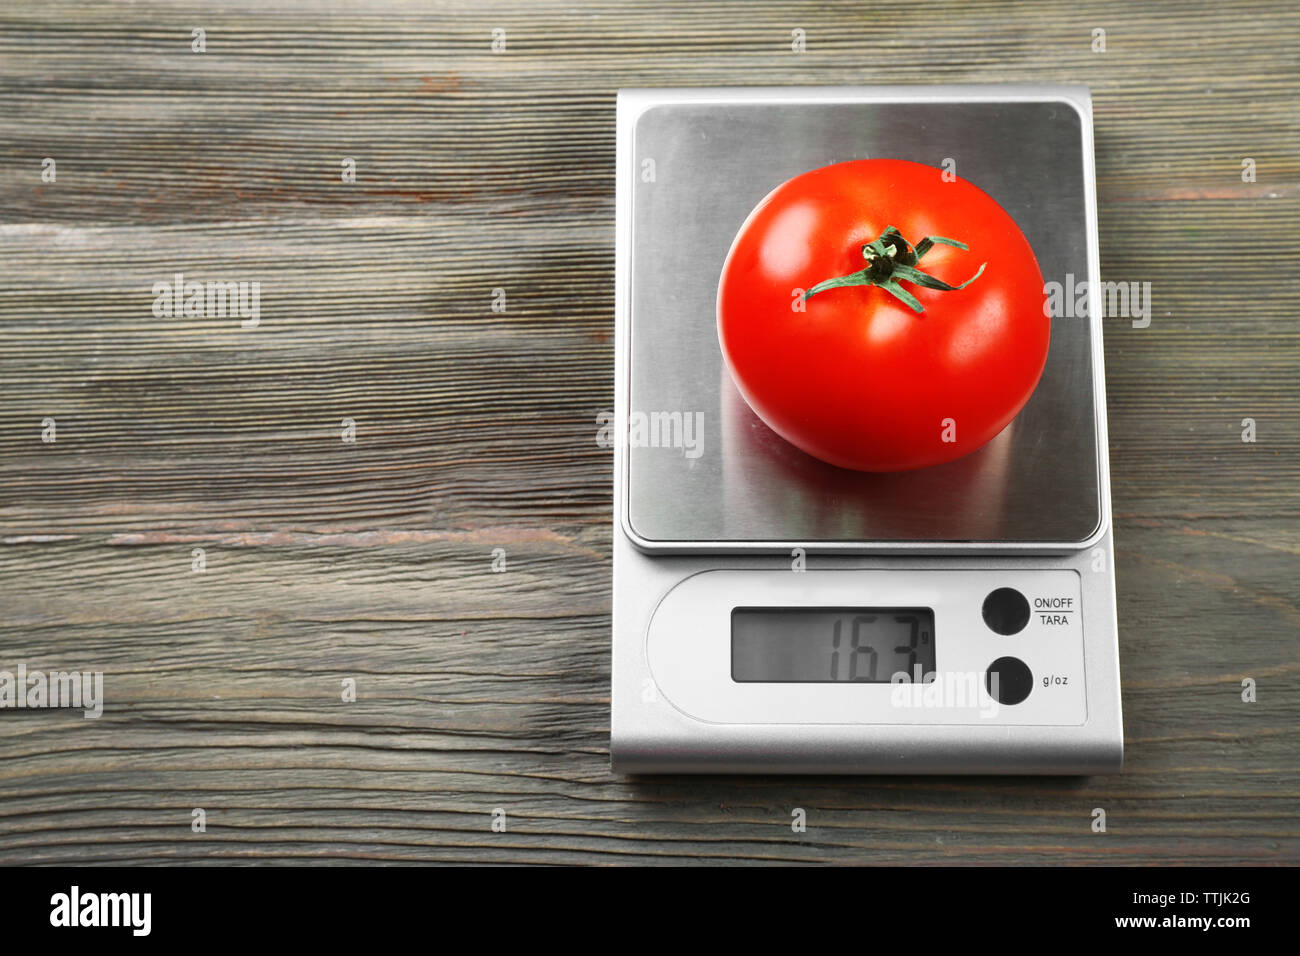 Tomato with digital kitchen scales on wooden background - Stock Image